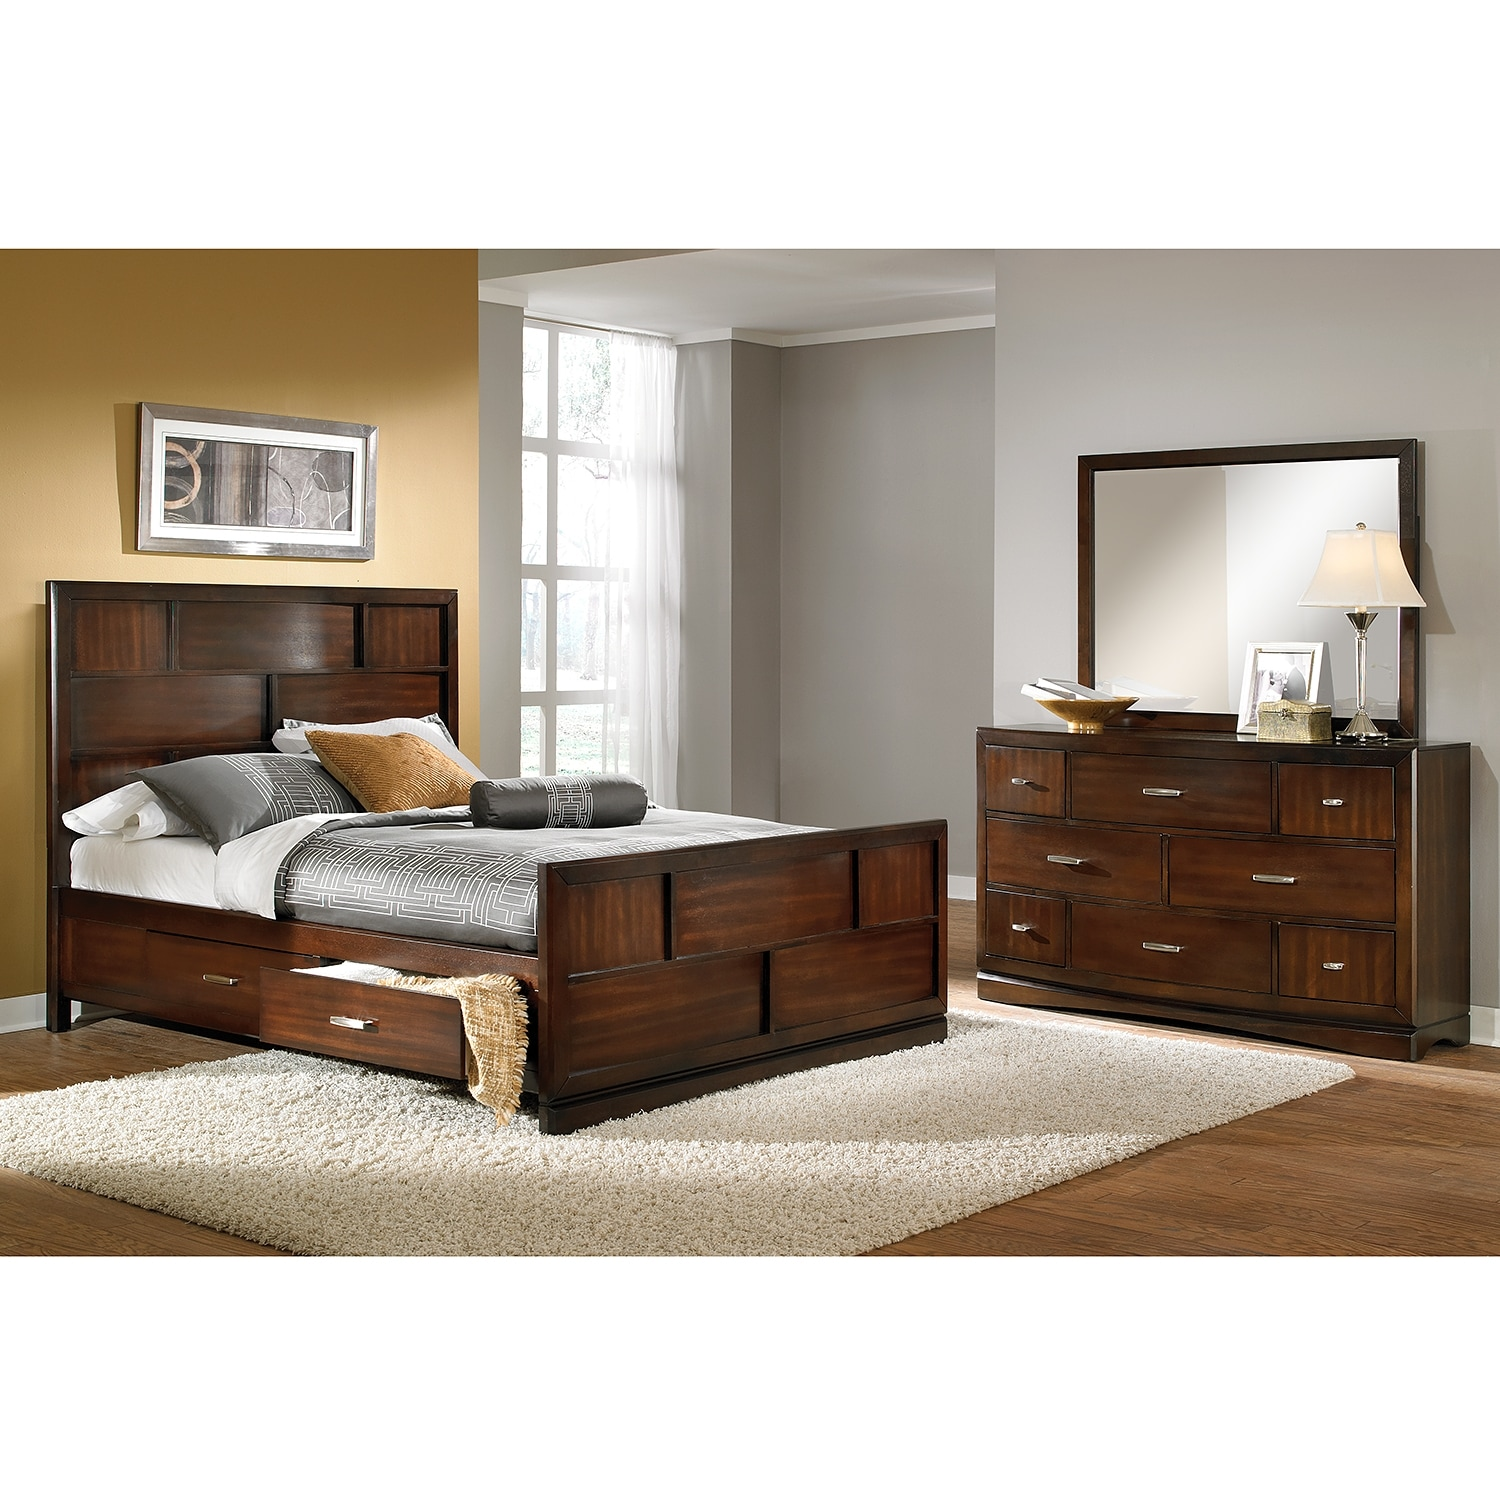 Storage Bedroom Furniture: Toronto 5-Piece King Storage Bedroom Set